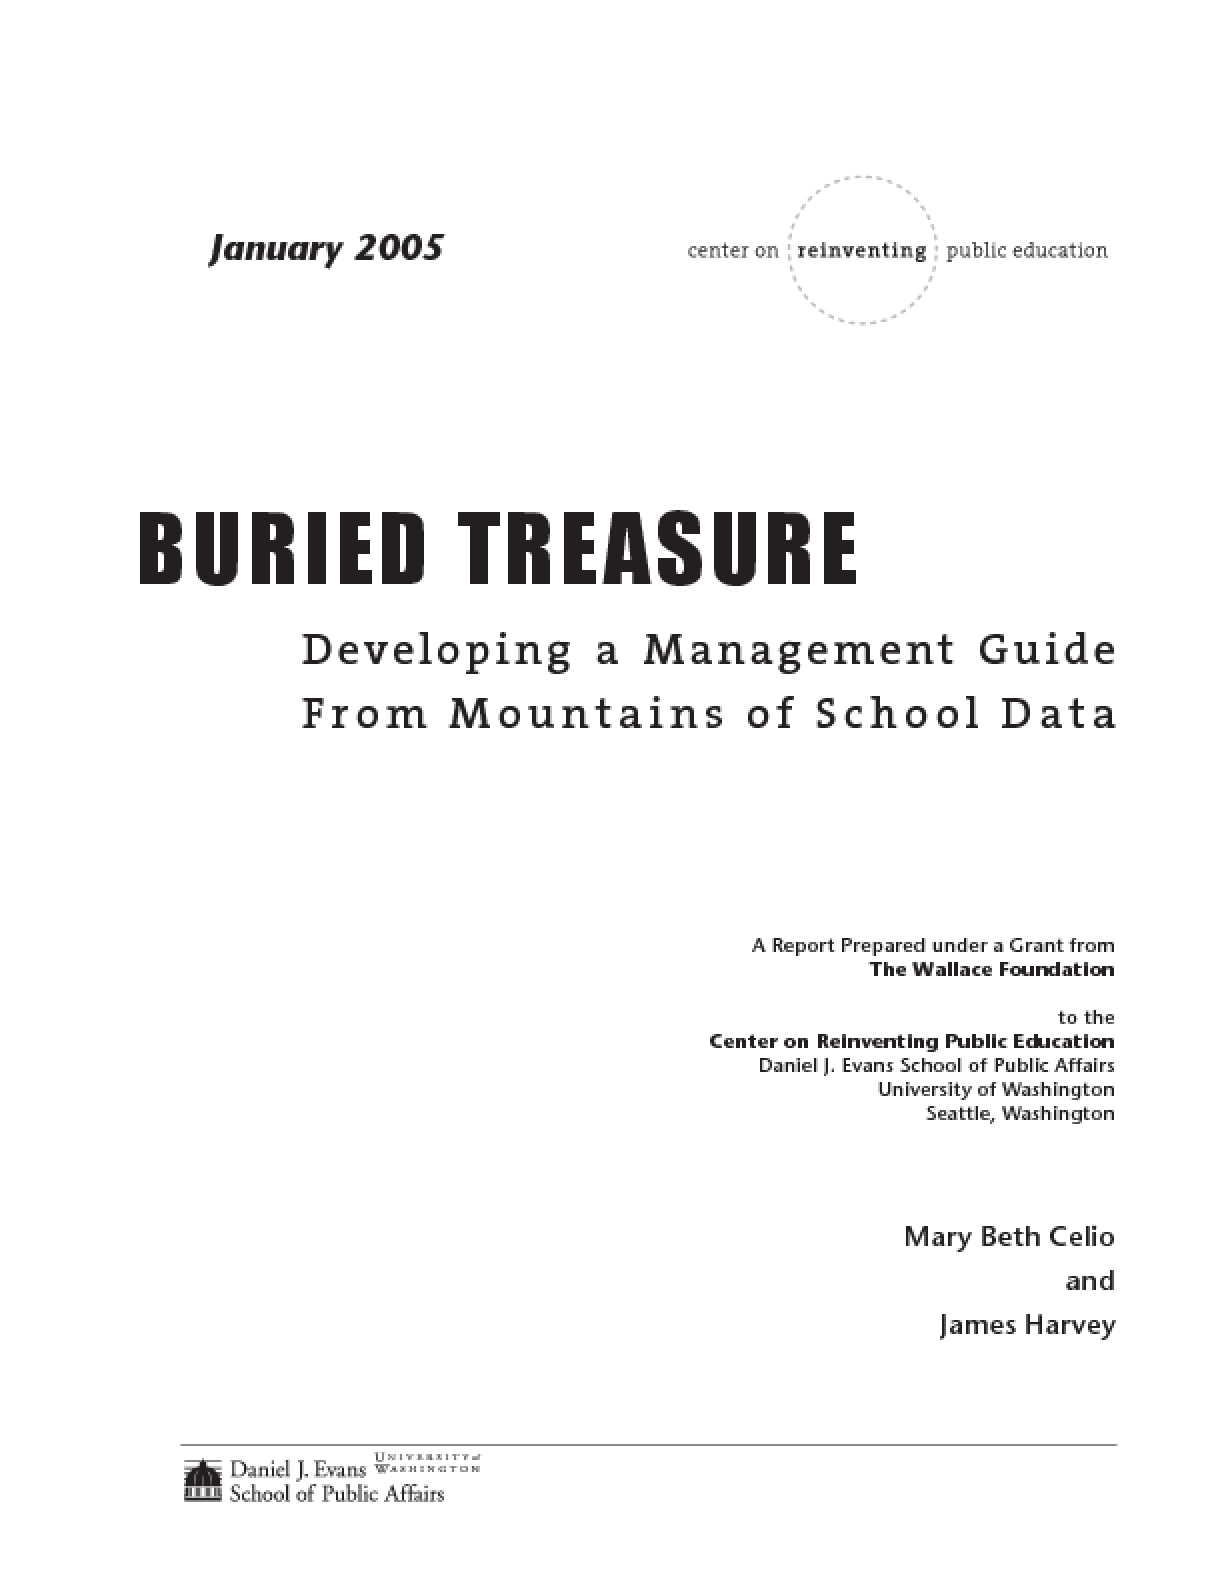 Buried Treasure: Developing a Management Guide From Mountains of School Data